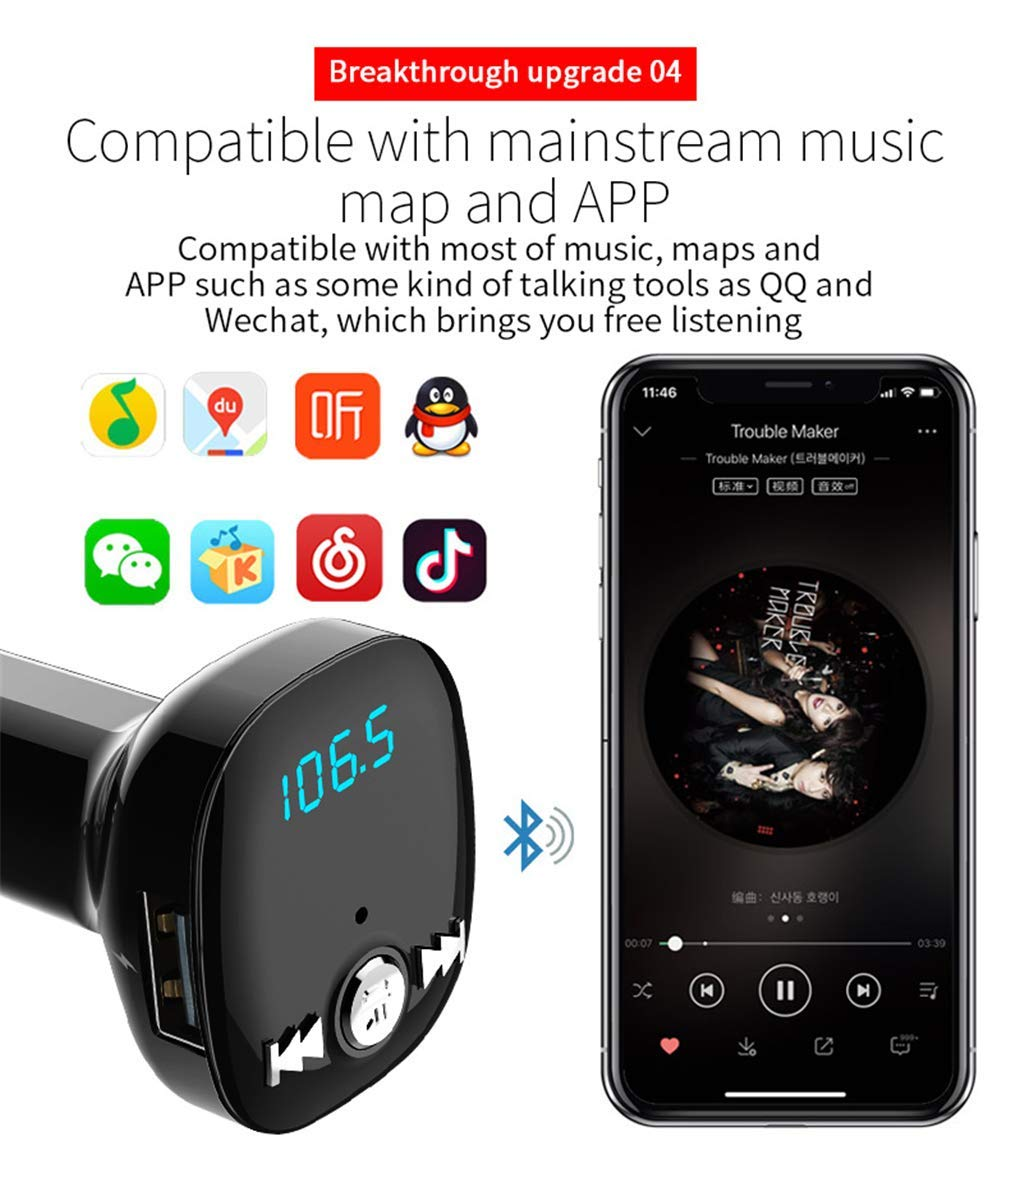 FM Transmitter MP3 Player Bluetooth Receiver/Hands Free Calling/Radio Adapter/Car Charger with Bluetooth 4.2/2 USB Ports Car Kit by Nwbdqc (Image #4)